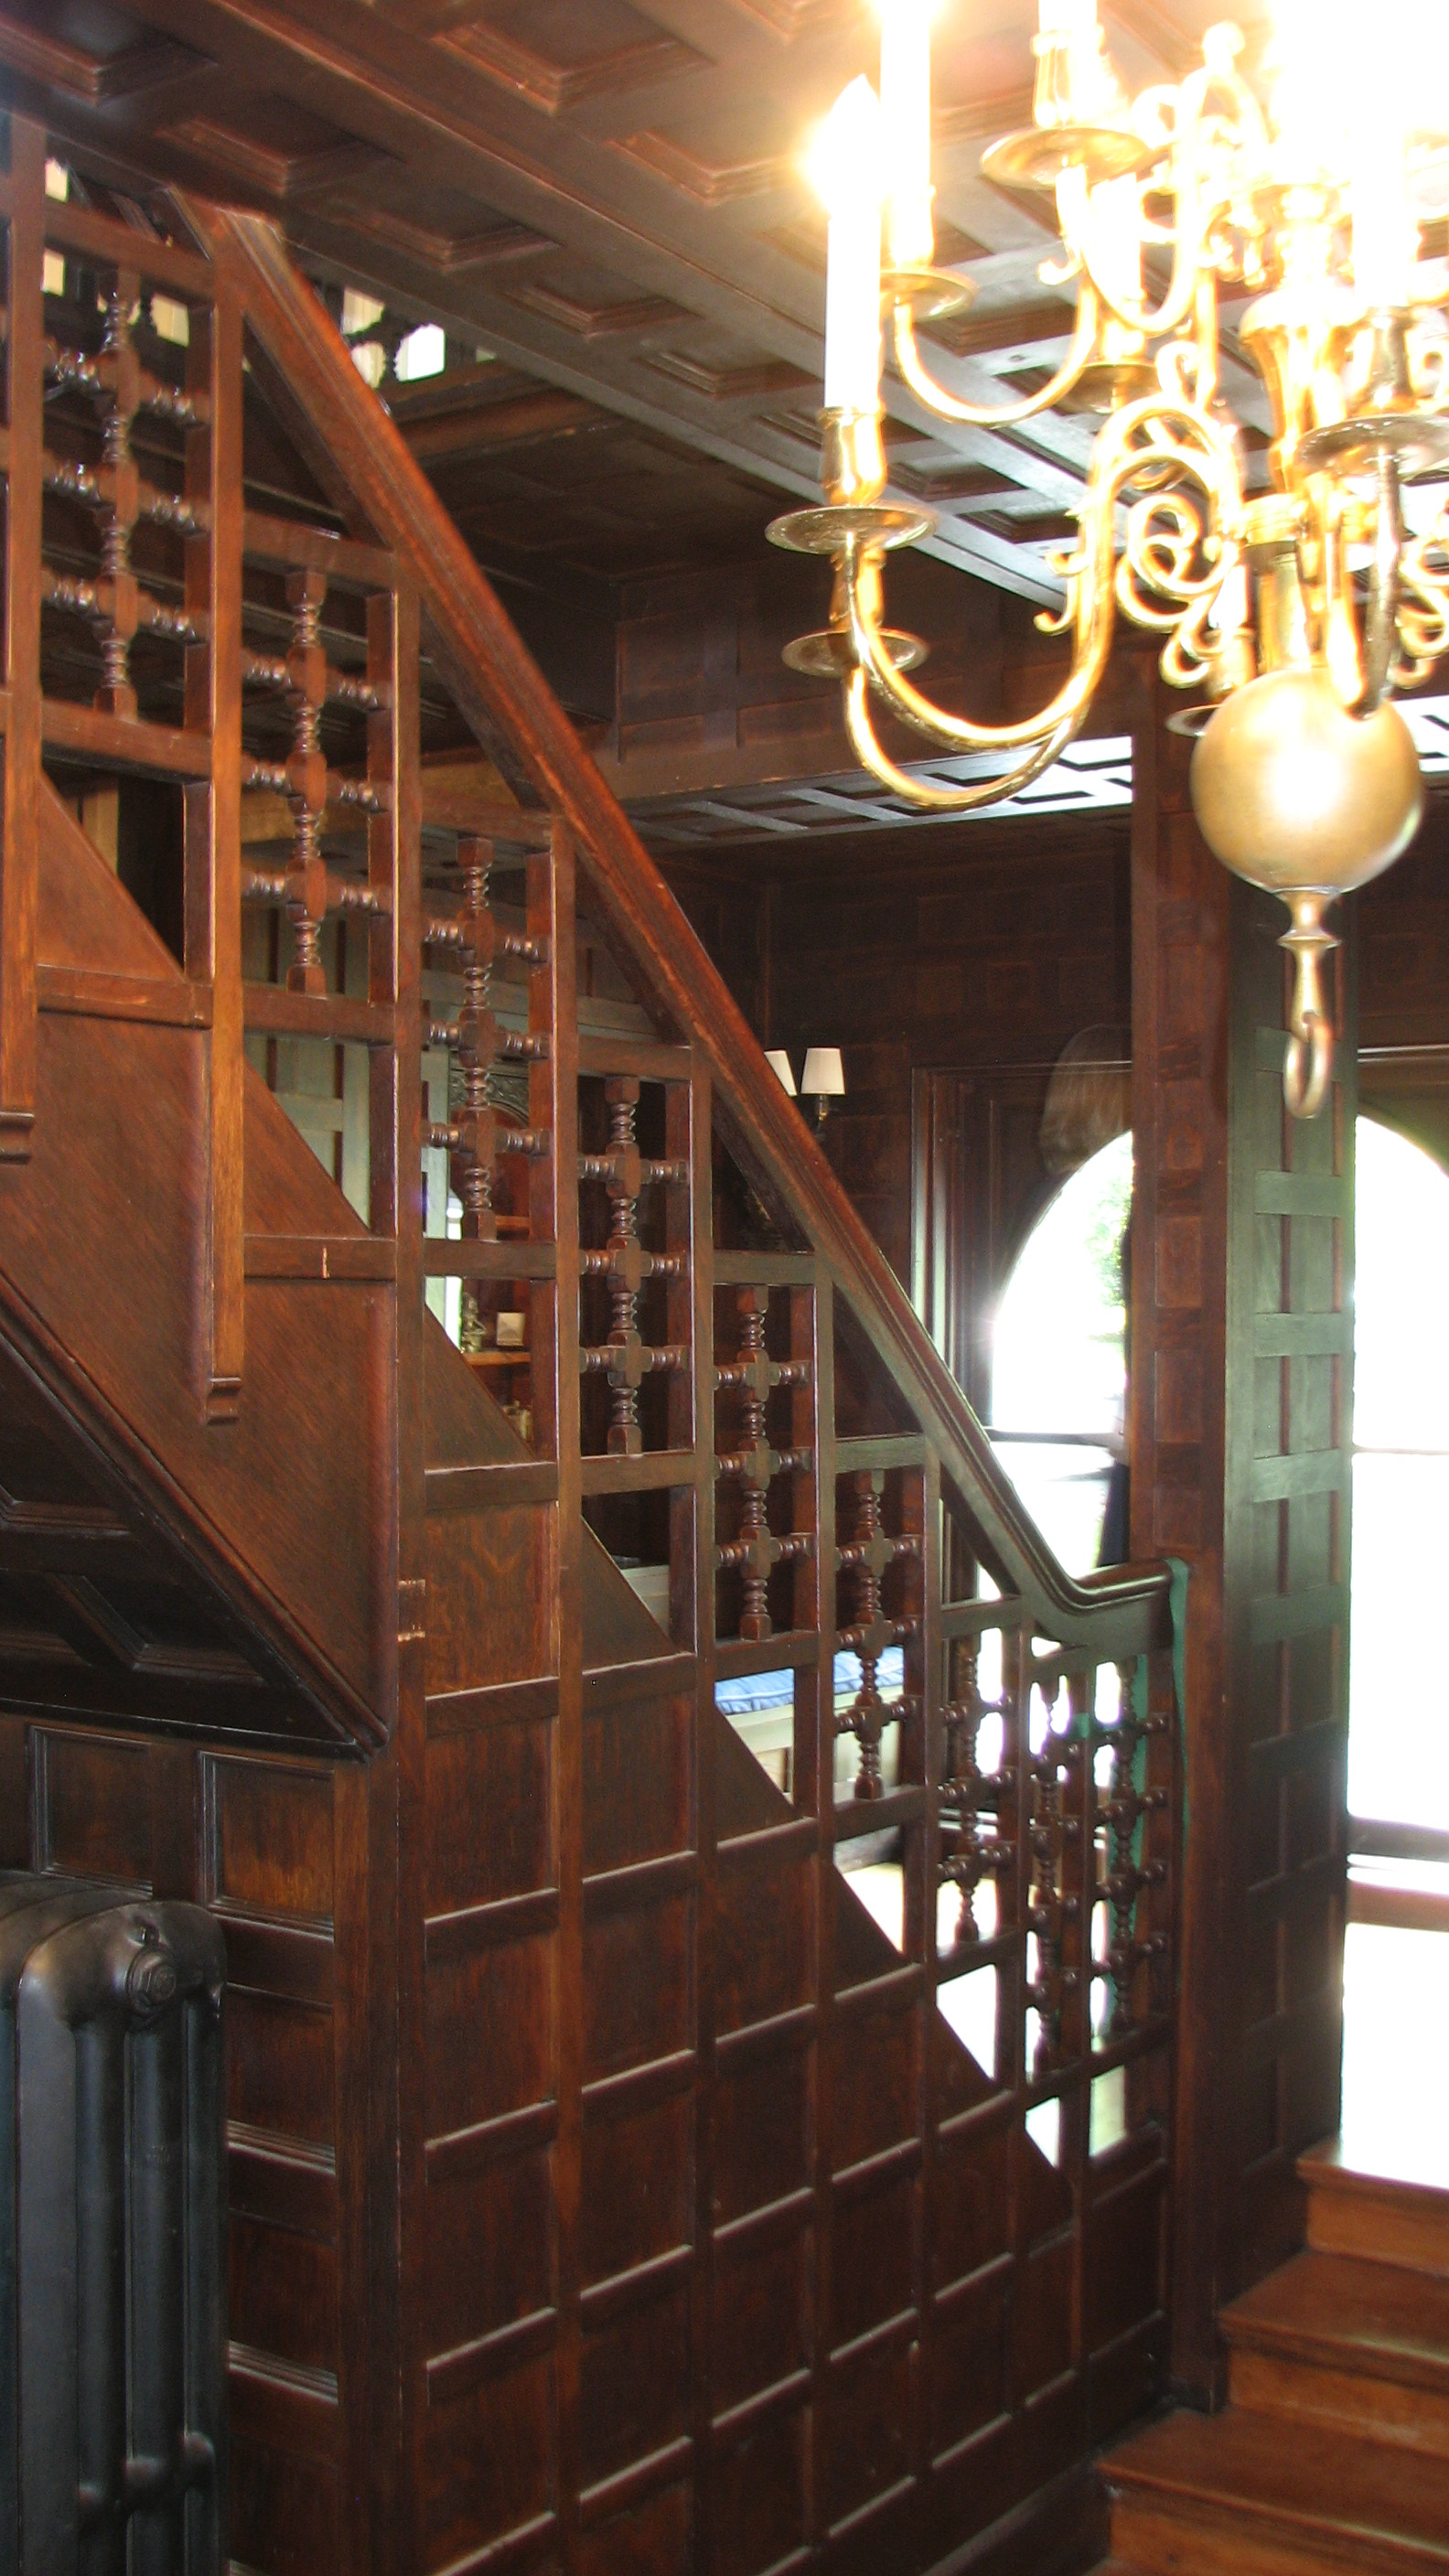 The grand hall contains a dramatic staircase, carved wood doors and fireplace, and Delft tiles.